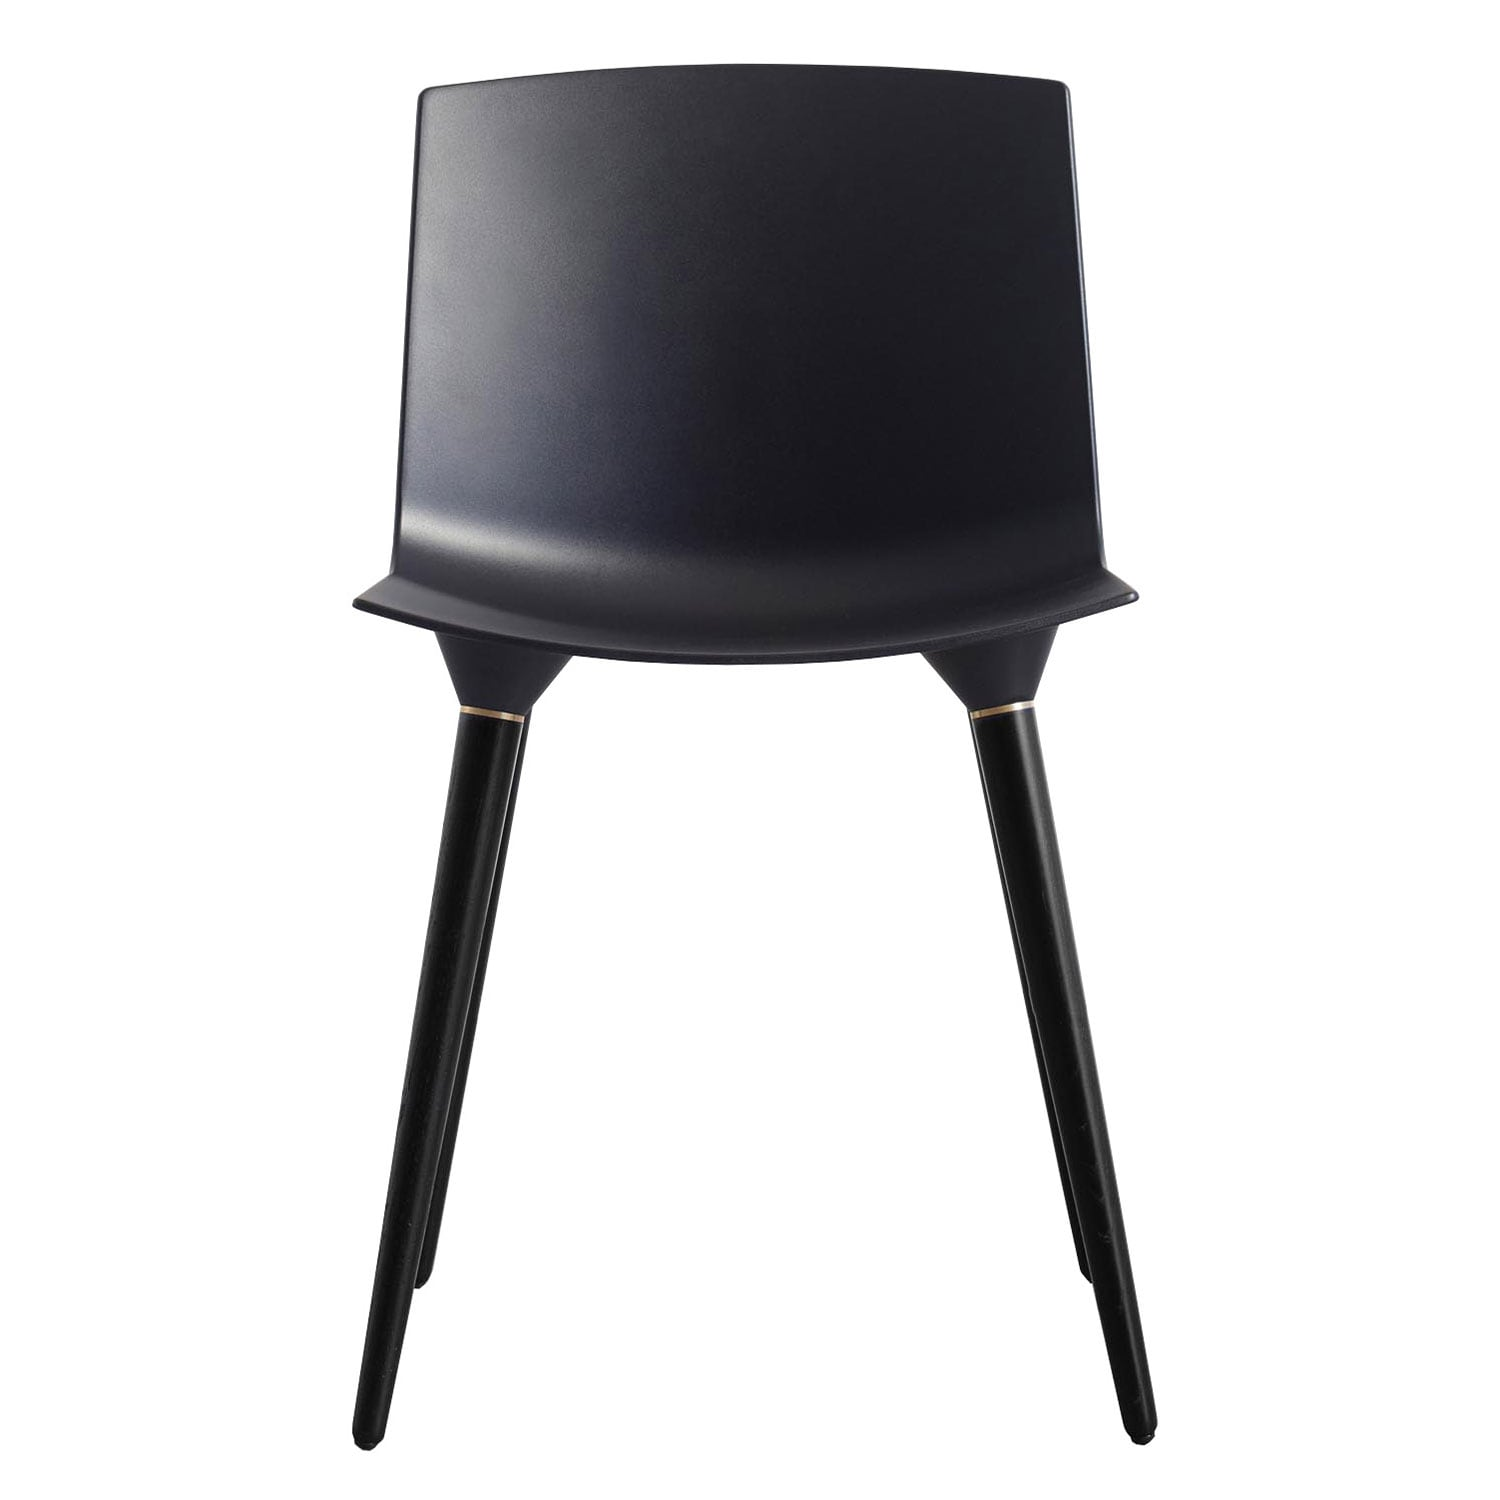 chair cba steel inversion for back pain andersen